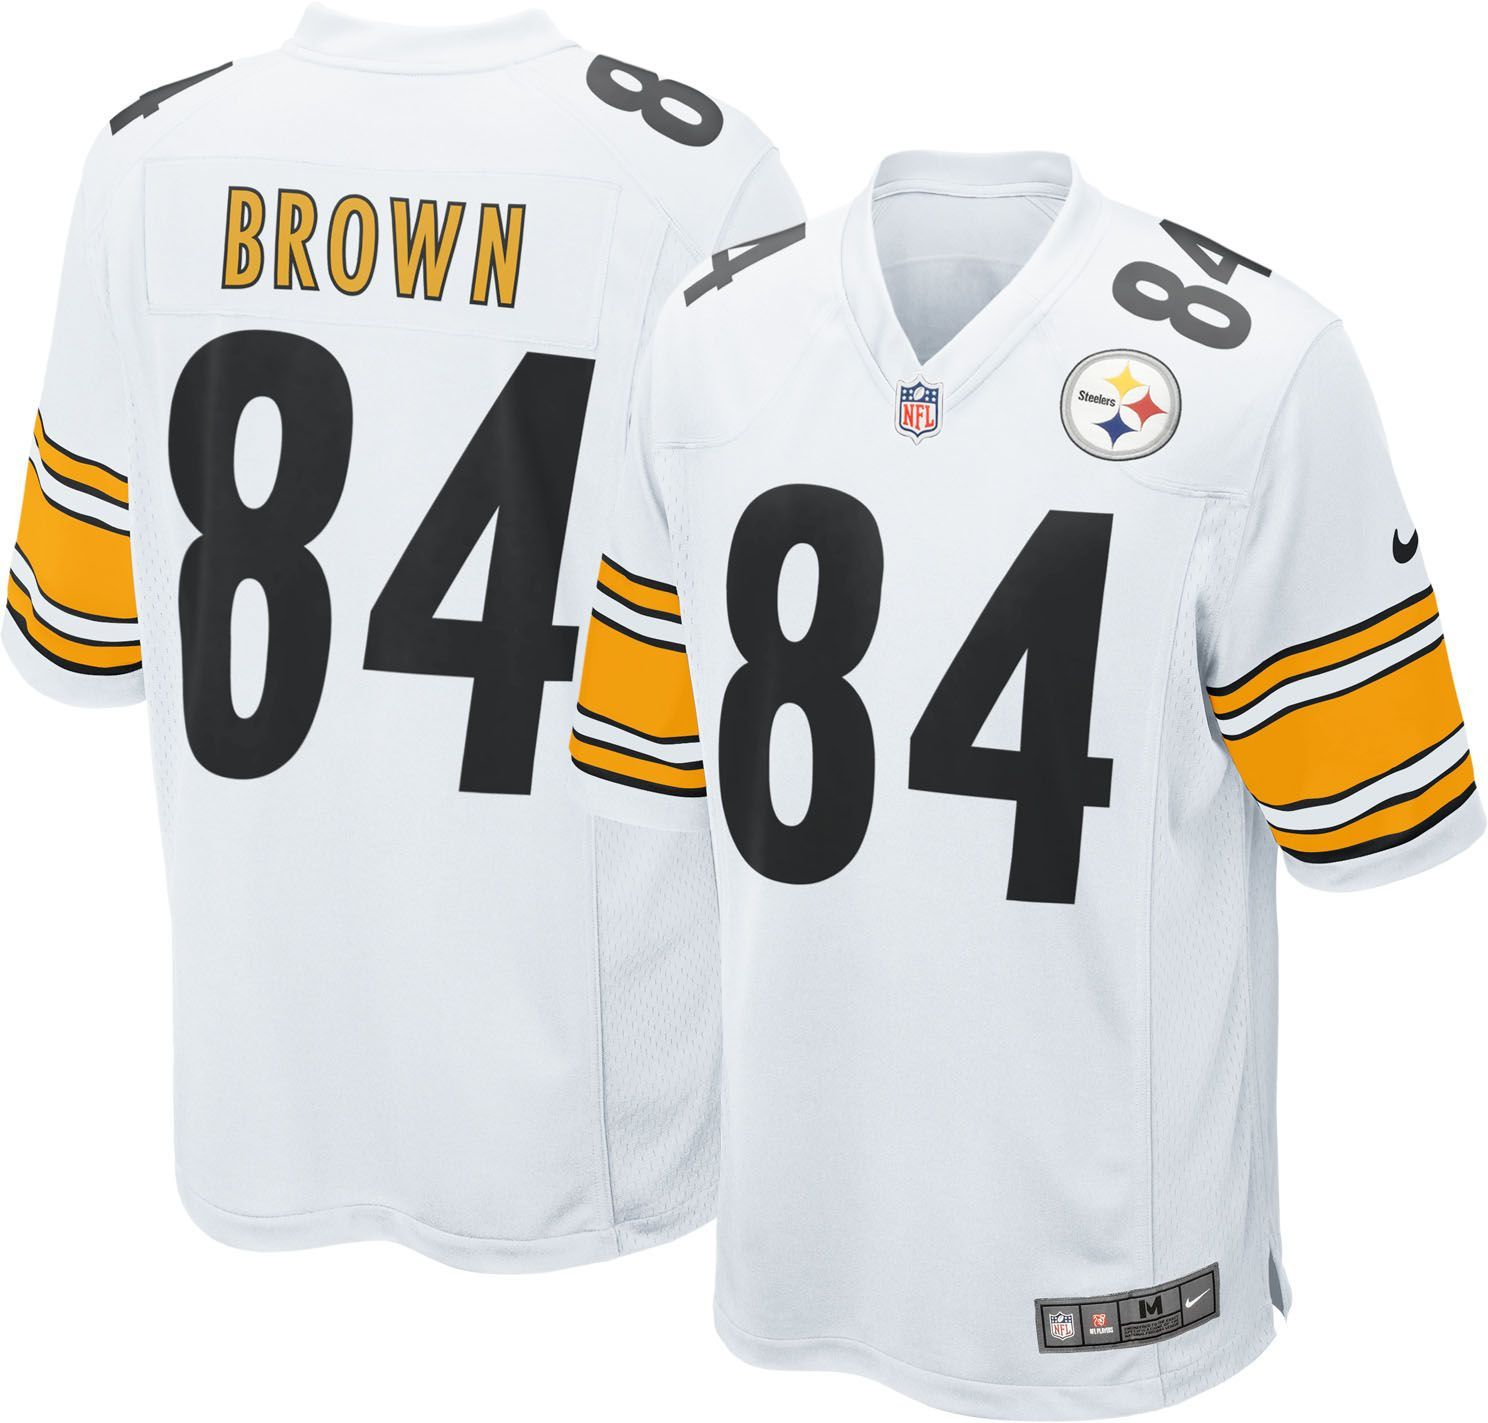 hot sale online 99cd9 86146 Nike Men's Away Game Jersey Pittsburgh Antonio Brown #84 ...